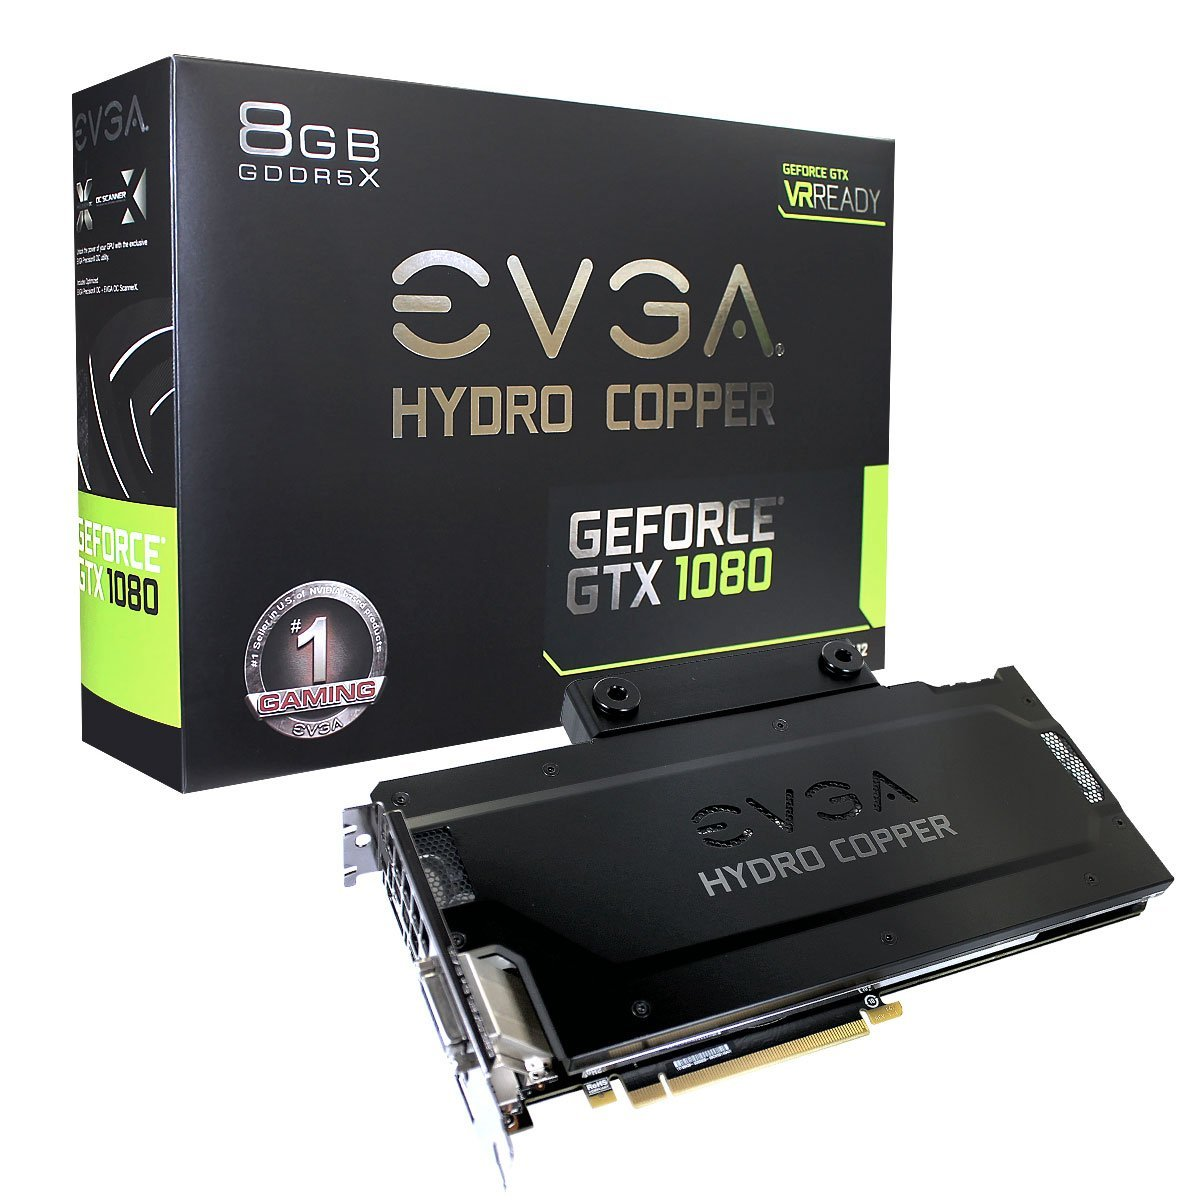 EVGA GeForce GTX 1080 FTW HYDRO COPPER GAMING, 8GB GDDR5X, RGB LED, HYDRO COPPER Waterblock, 10 Powe